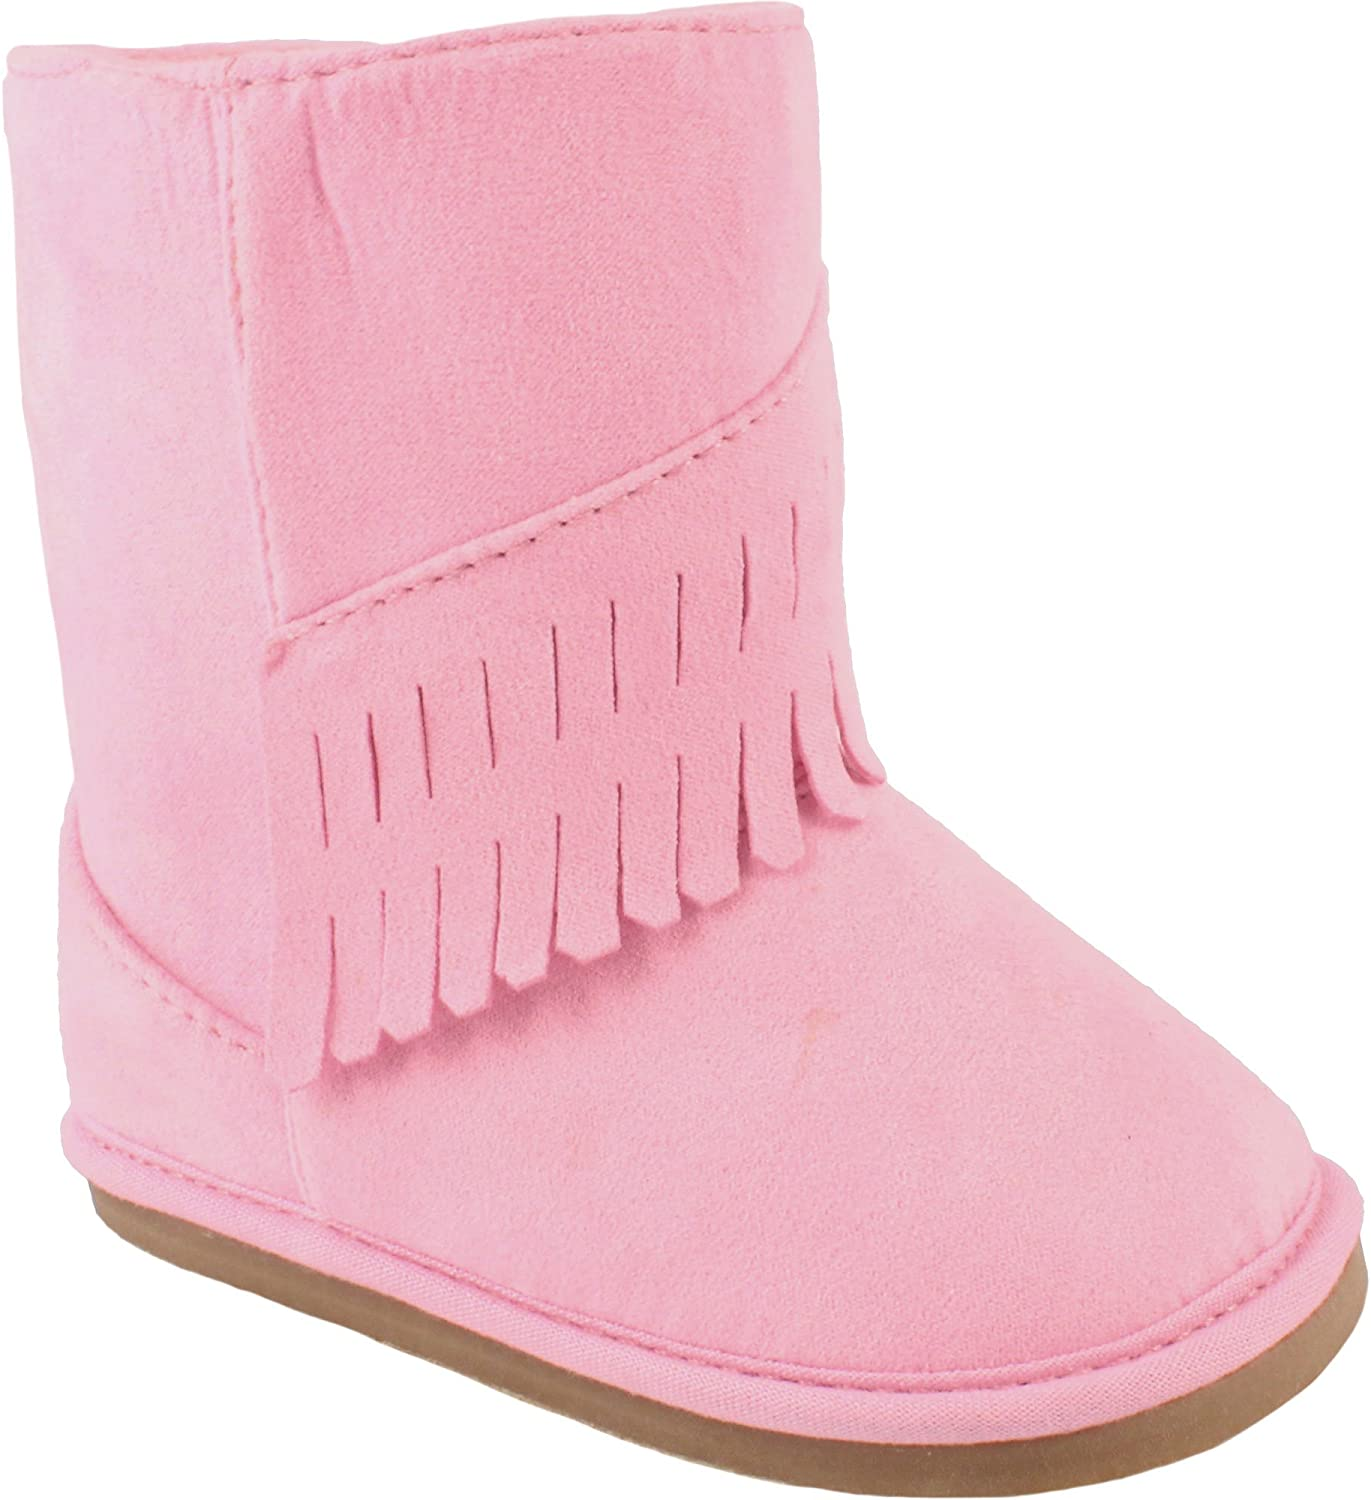 Wee Kids Baby-Girls Suede Western Boots with Fringe Infant Toddler Walking Shoes Cowboy Cowgirl Moccasin